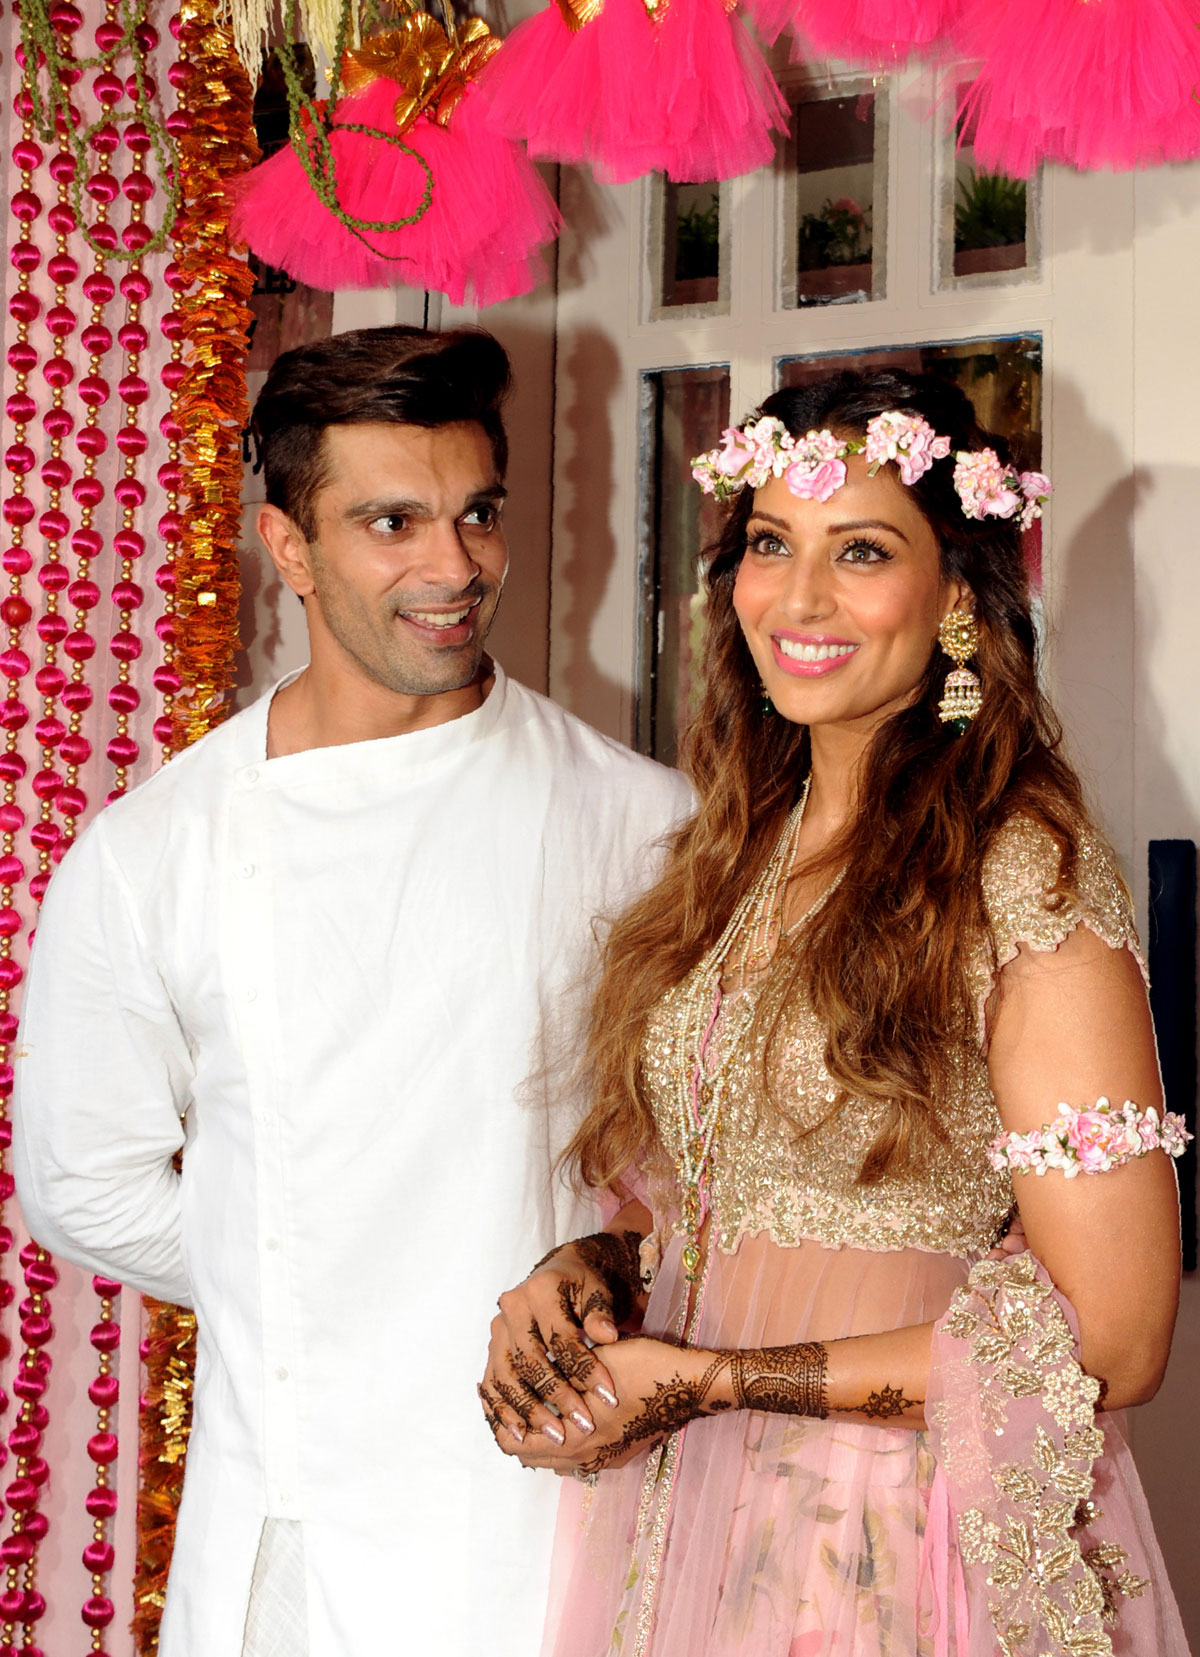 Karan Singh Grover (l) and Bipasha Basu pose for a photograph during their mehendi ceremony in Mumbai, April 29. (AFP | Getty Images)